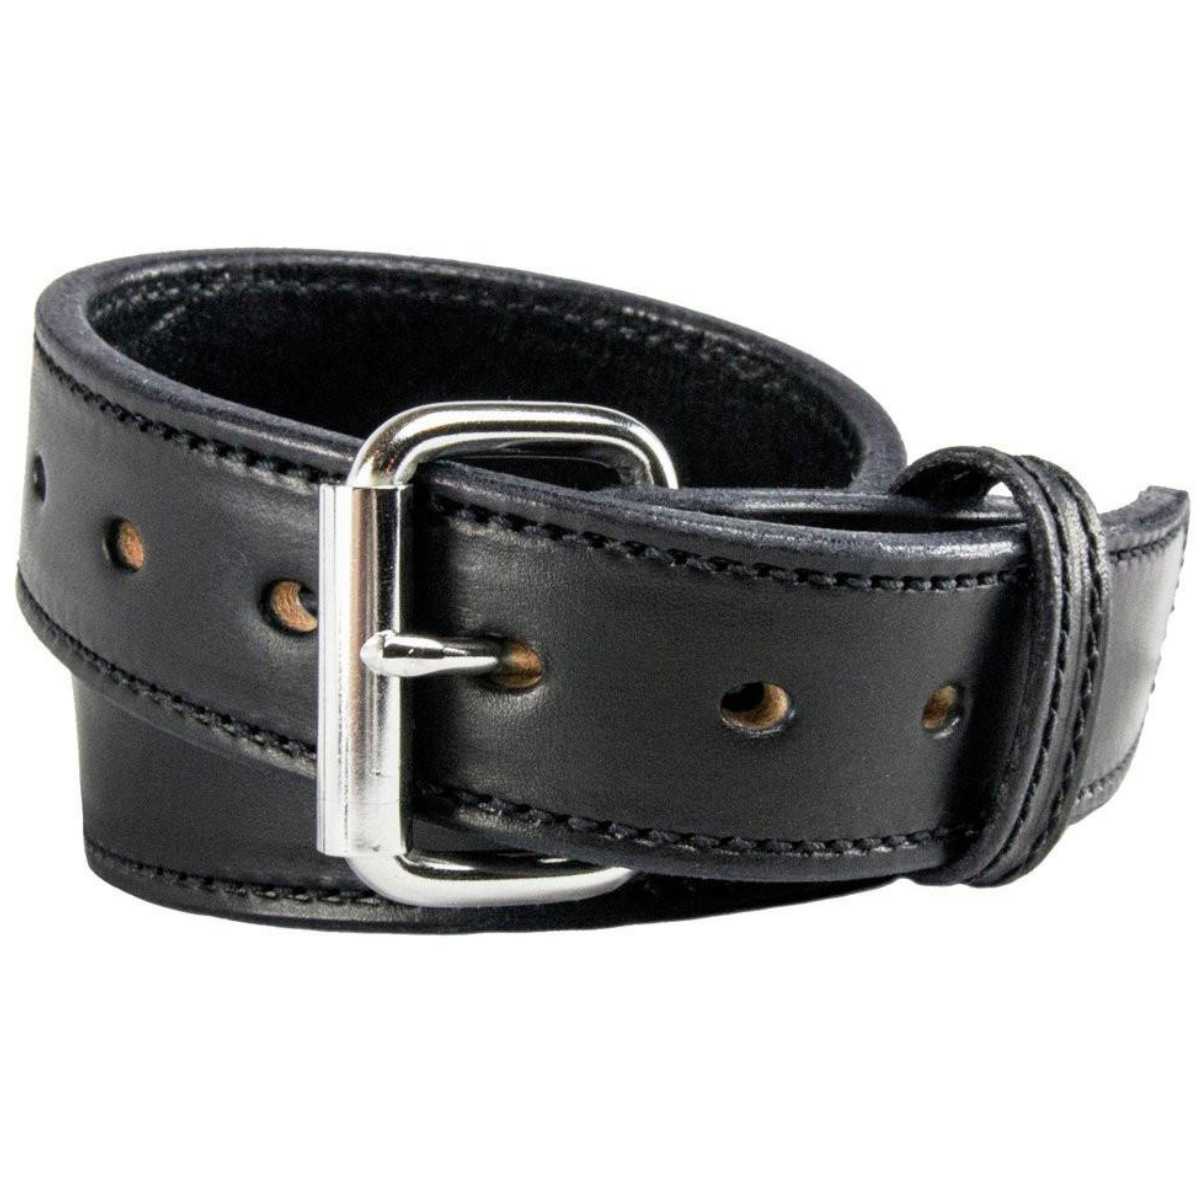 Leather Gun Belts